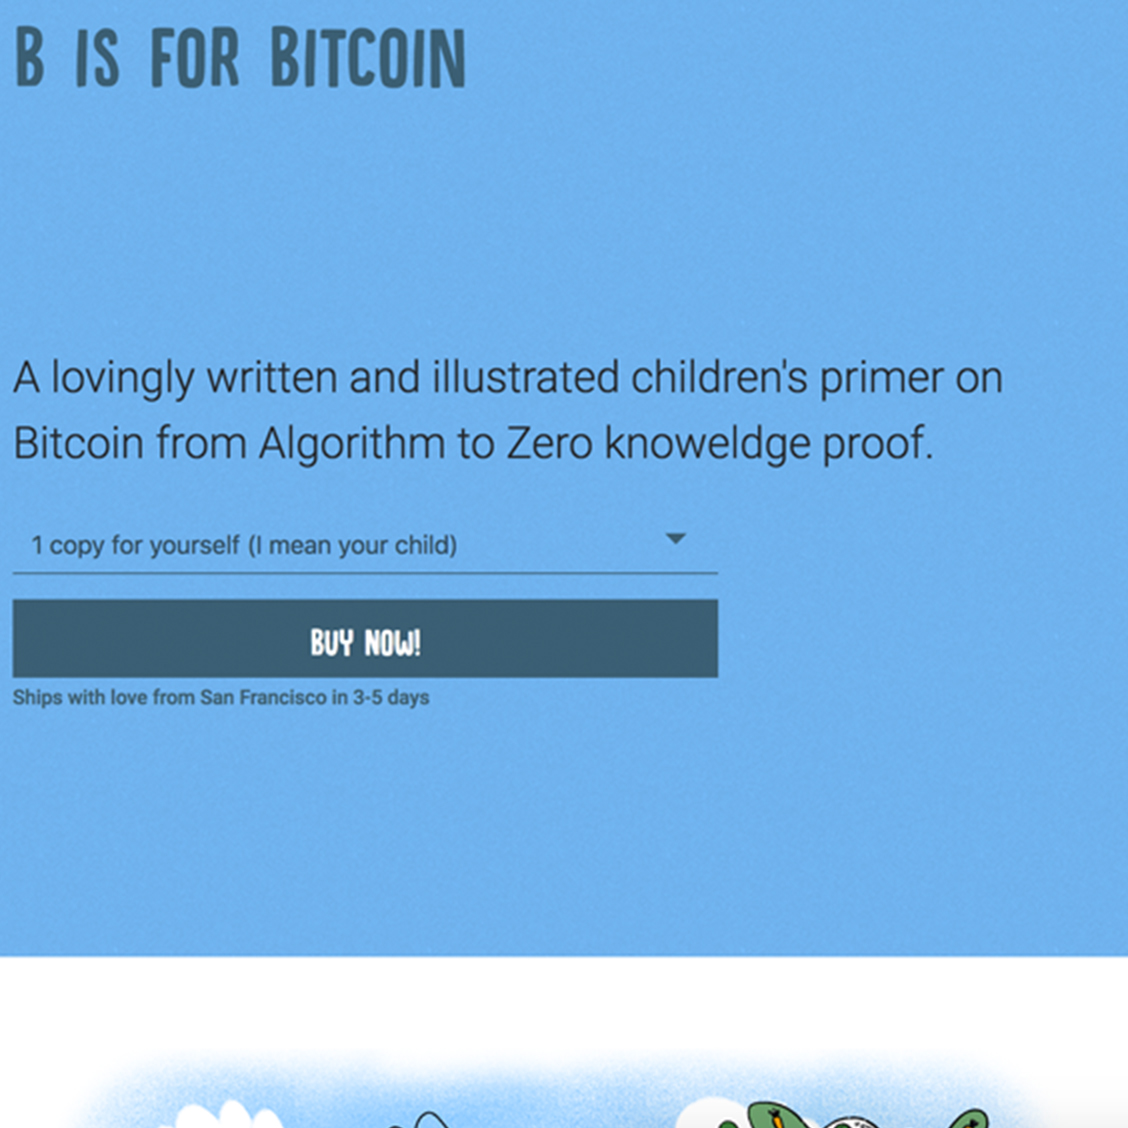 B is for Bitcoin